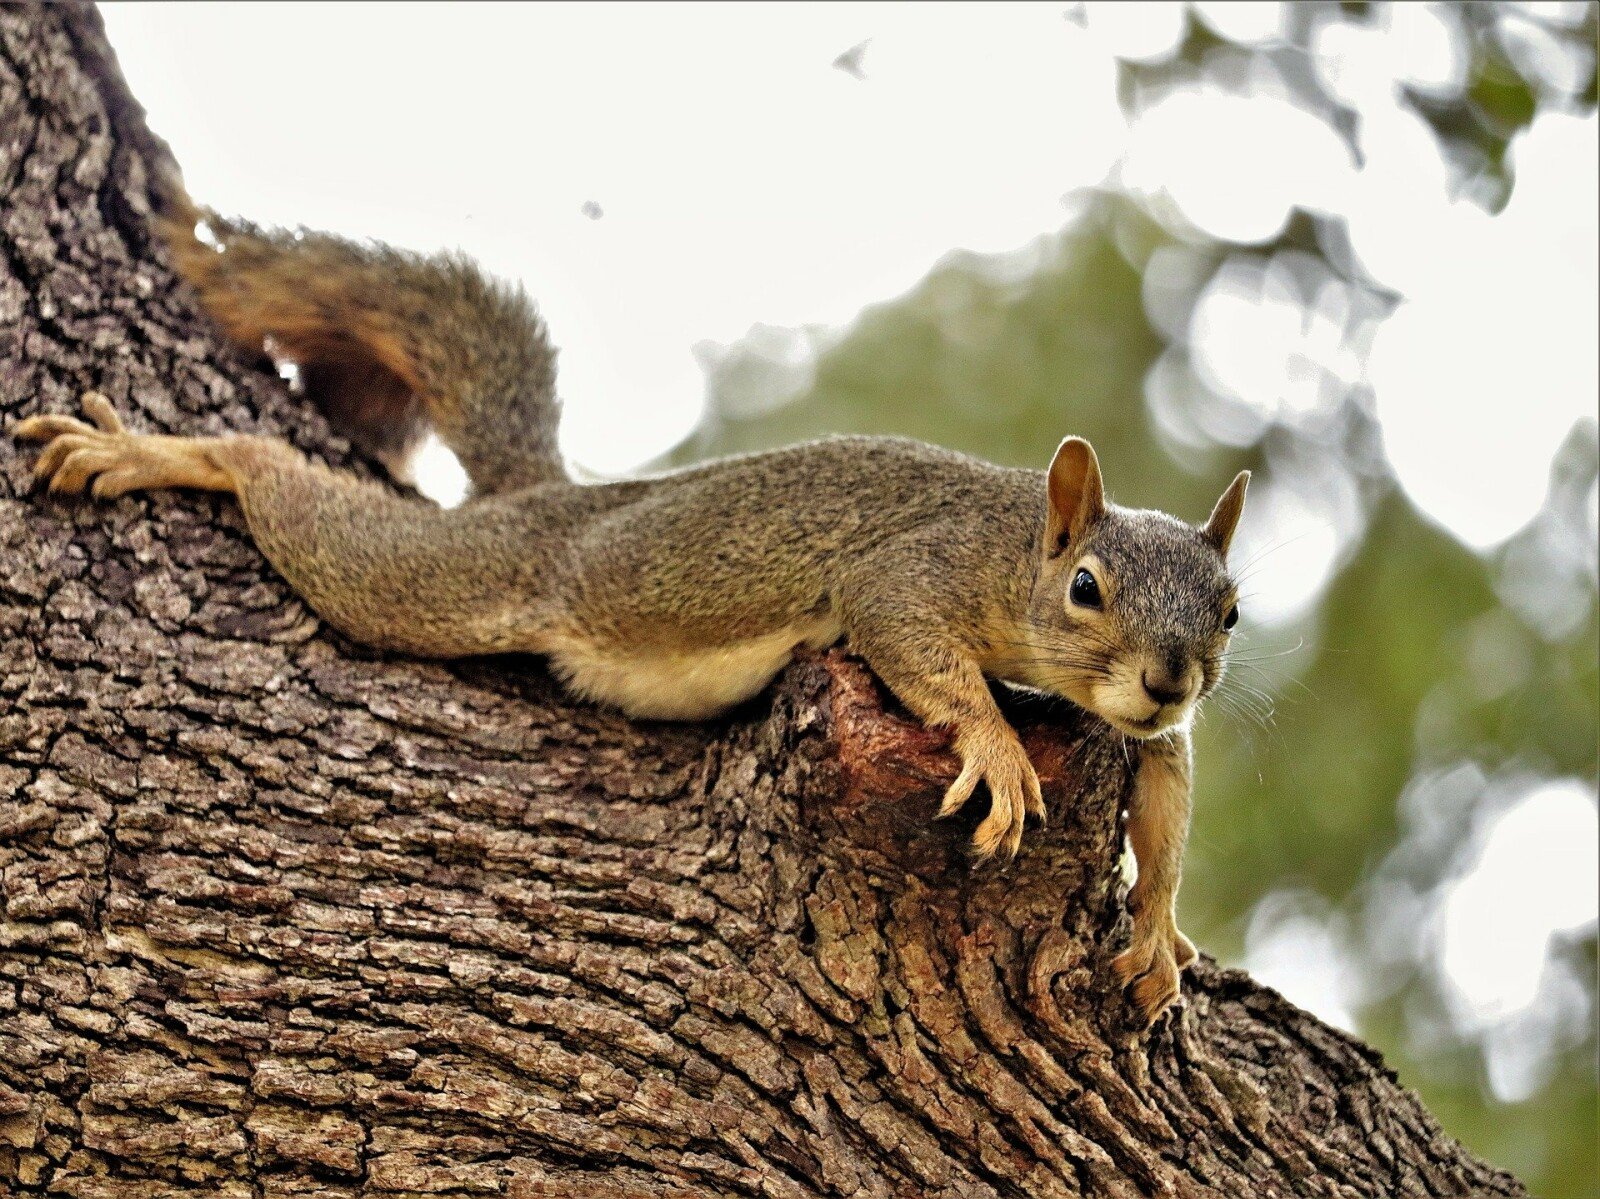 Hormonal Squirrels - What's the Connection?